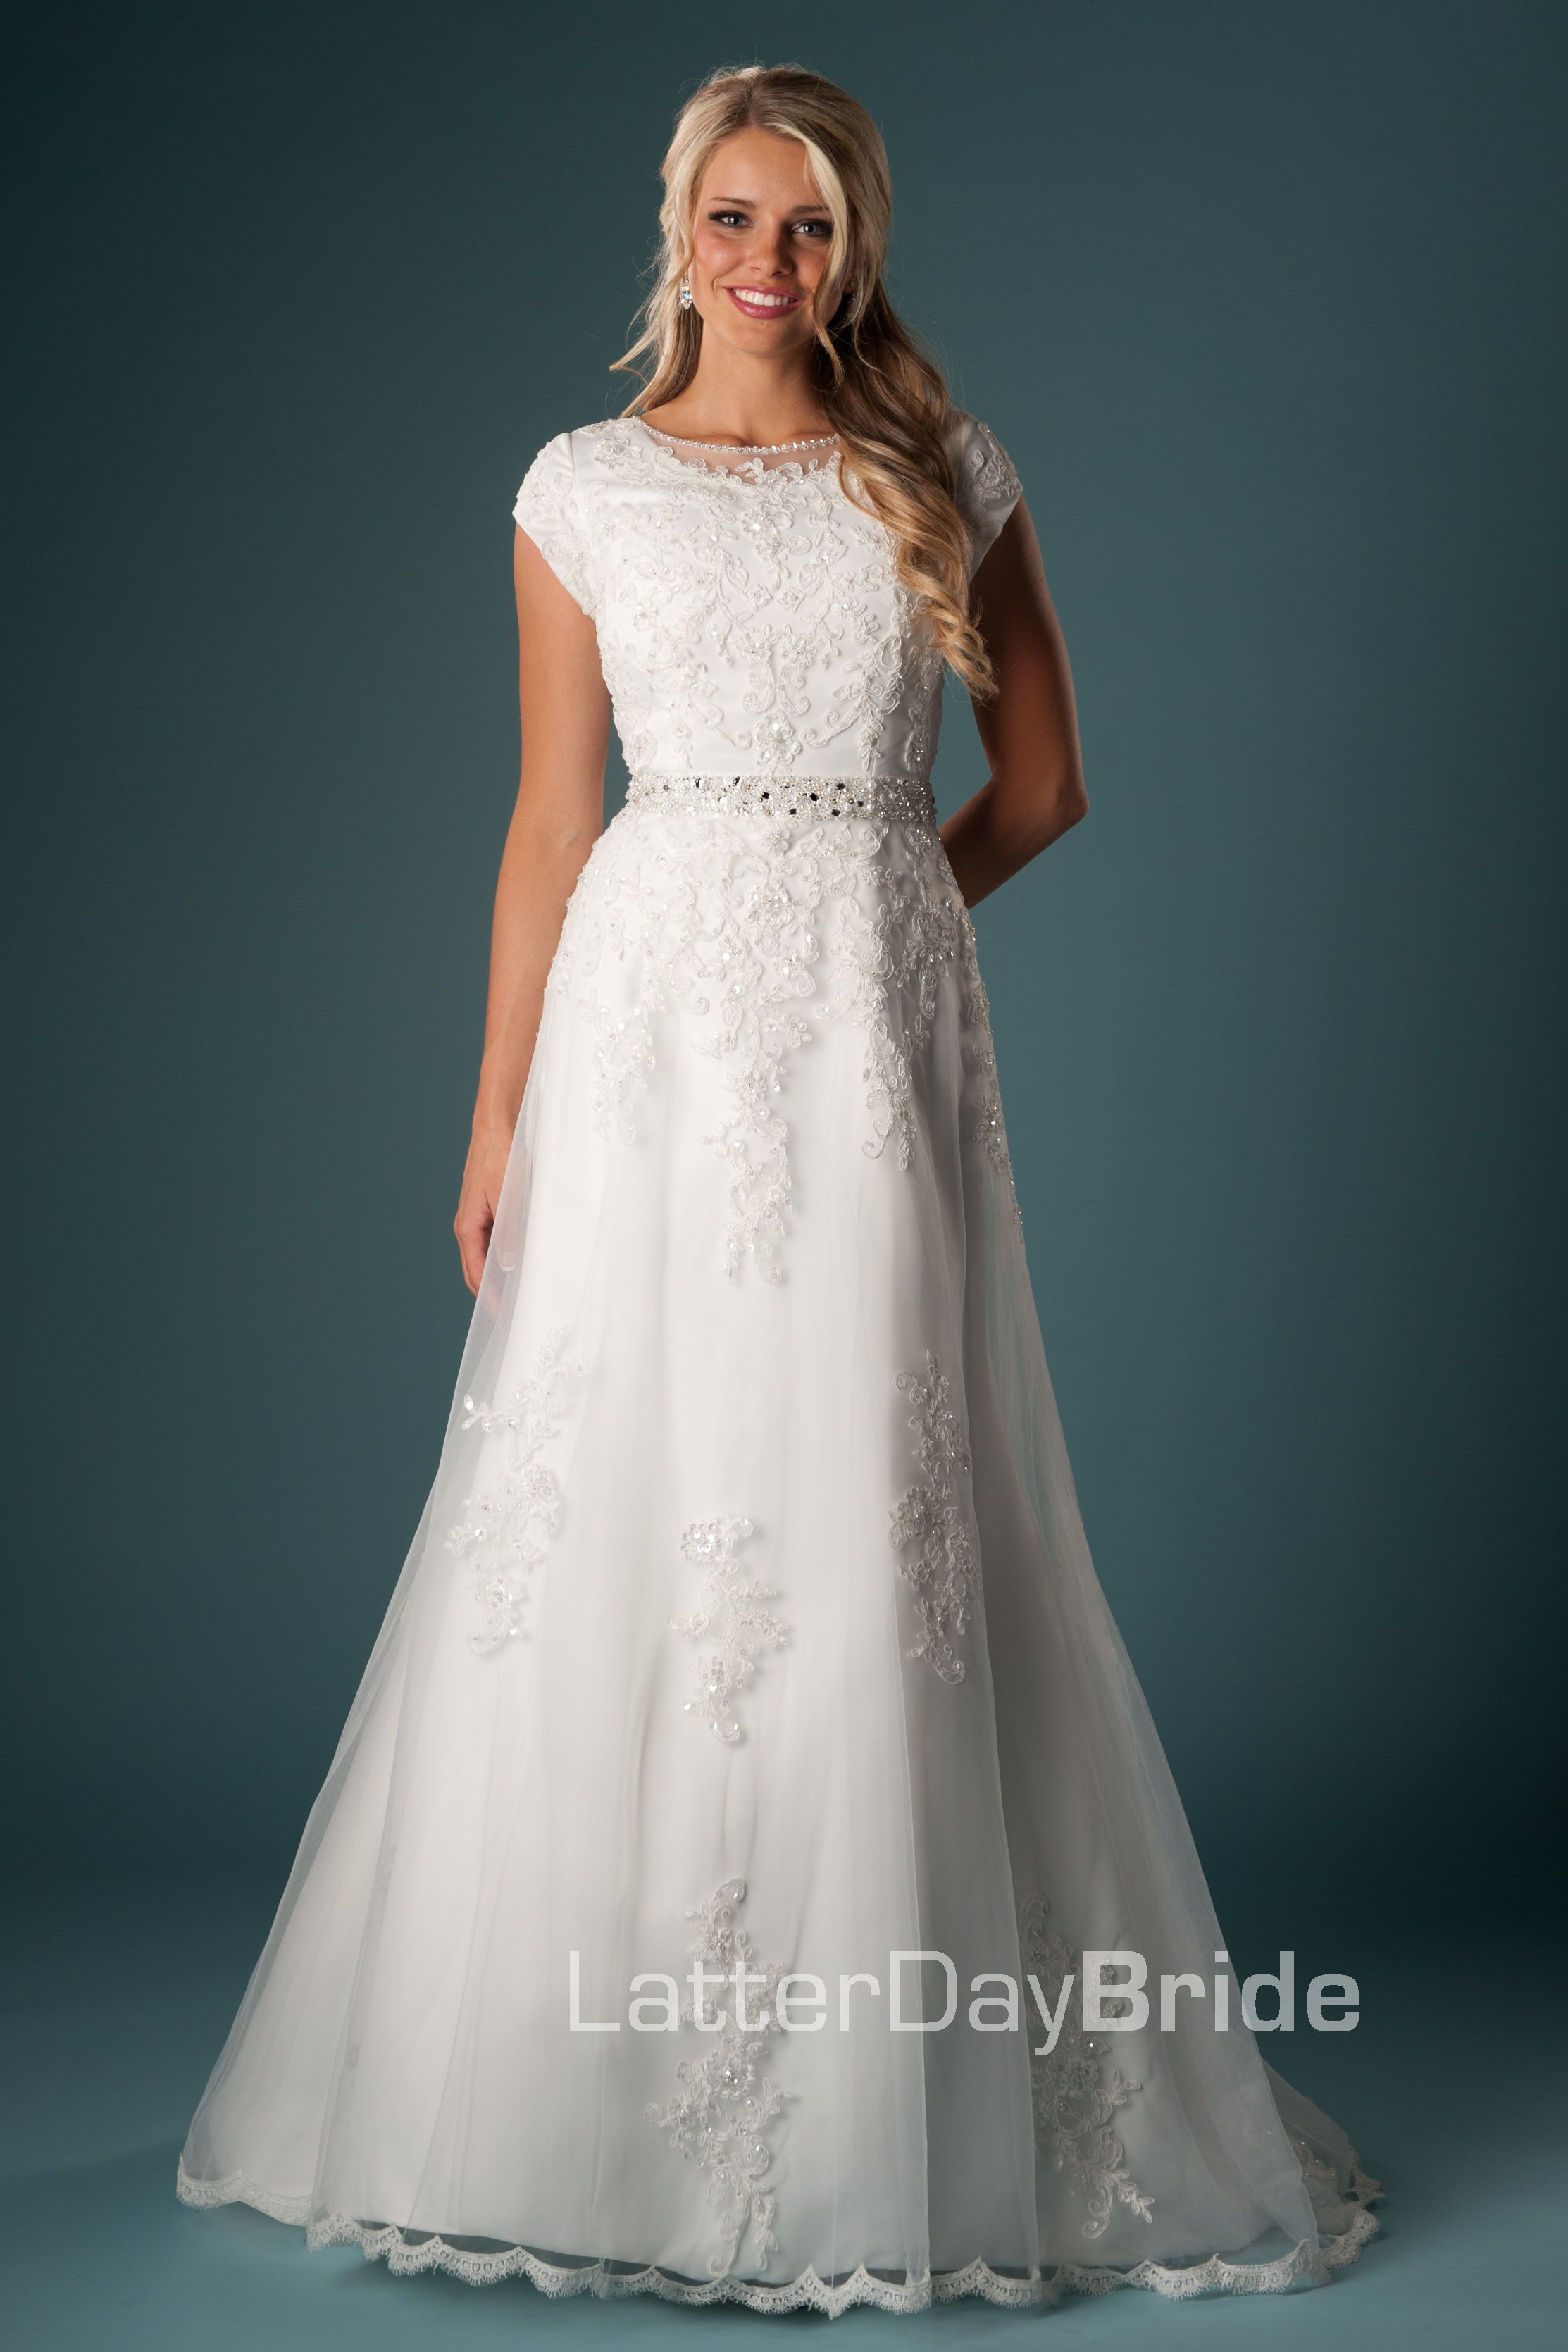 Abelardo - This simple silhouette is adorned with lovely lace appliques and trim. The soft lace illusion neckline adds an interesting touch to this modest bridal gown. Available Sizes: 0-34 $1095.00